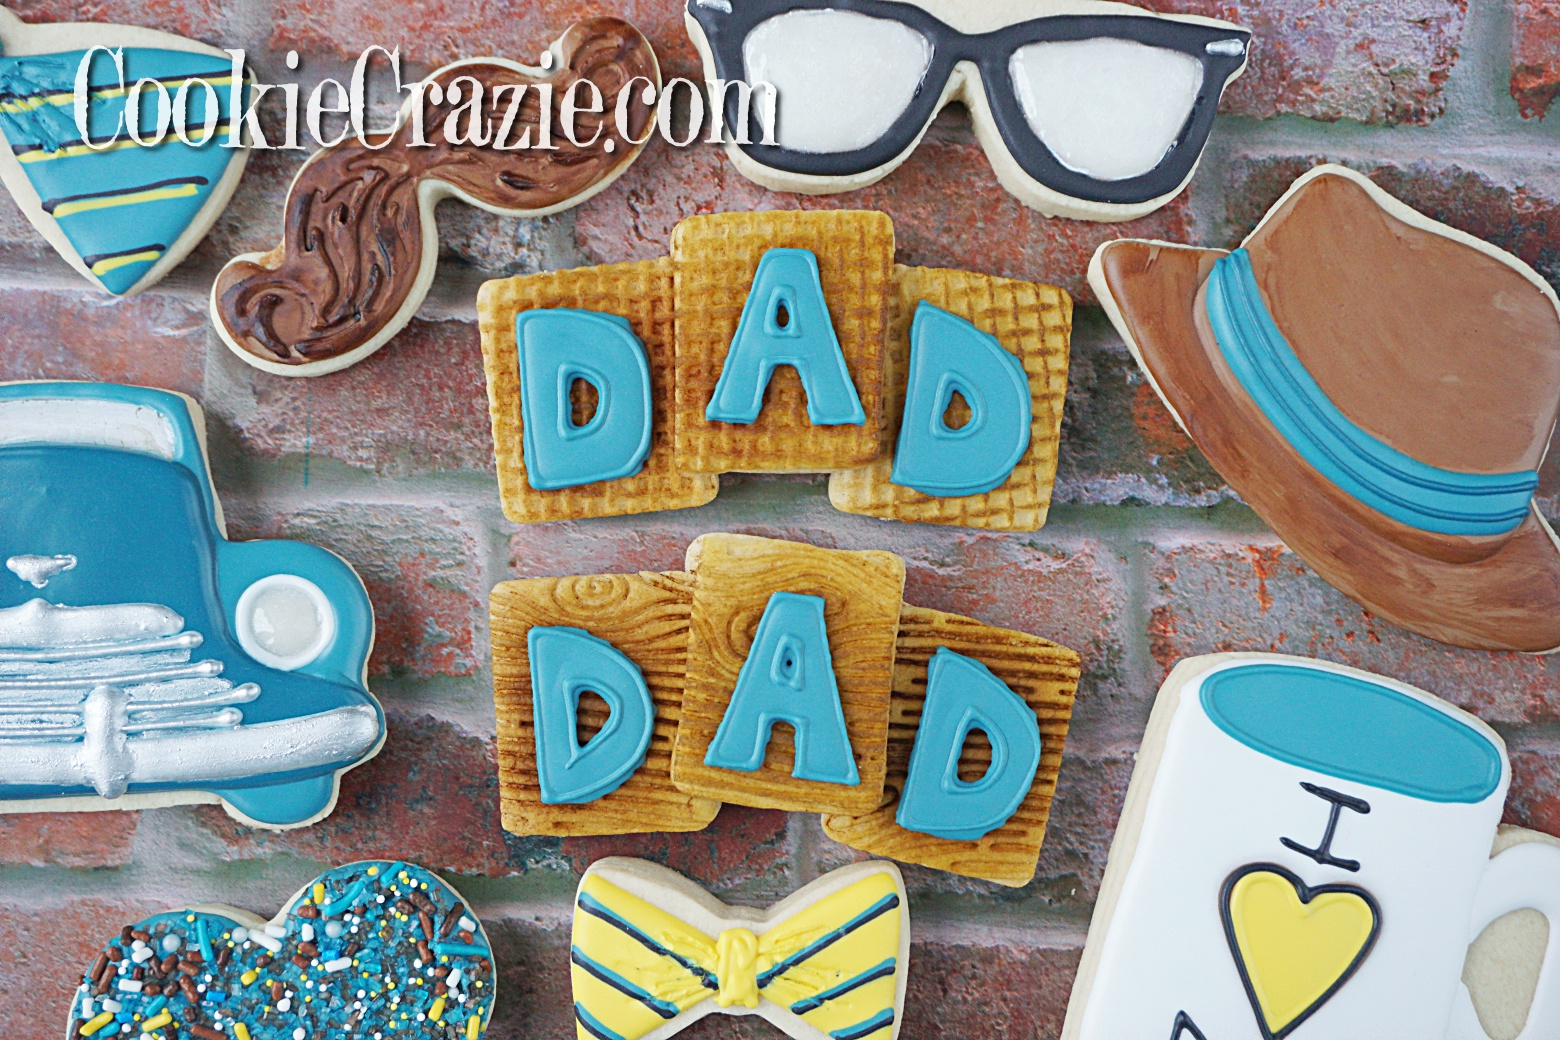 DAD Trio Blocks Decorated Sugar Cookies YouTube video  HERE      Trio block cookie cutter found  HERE